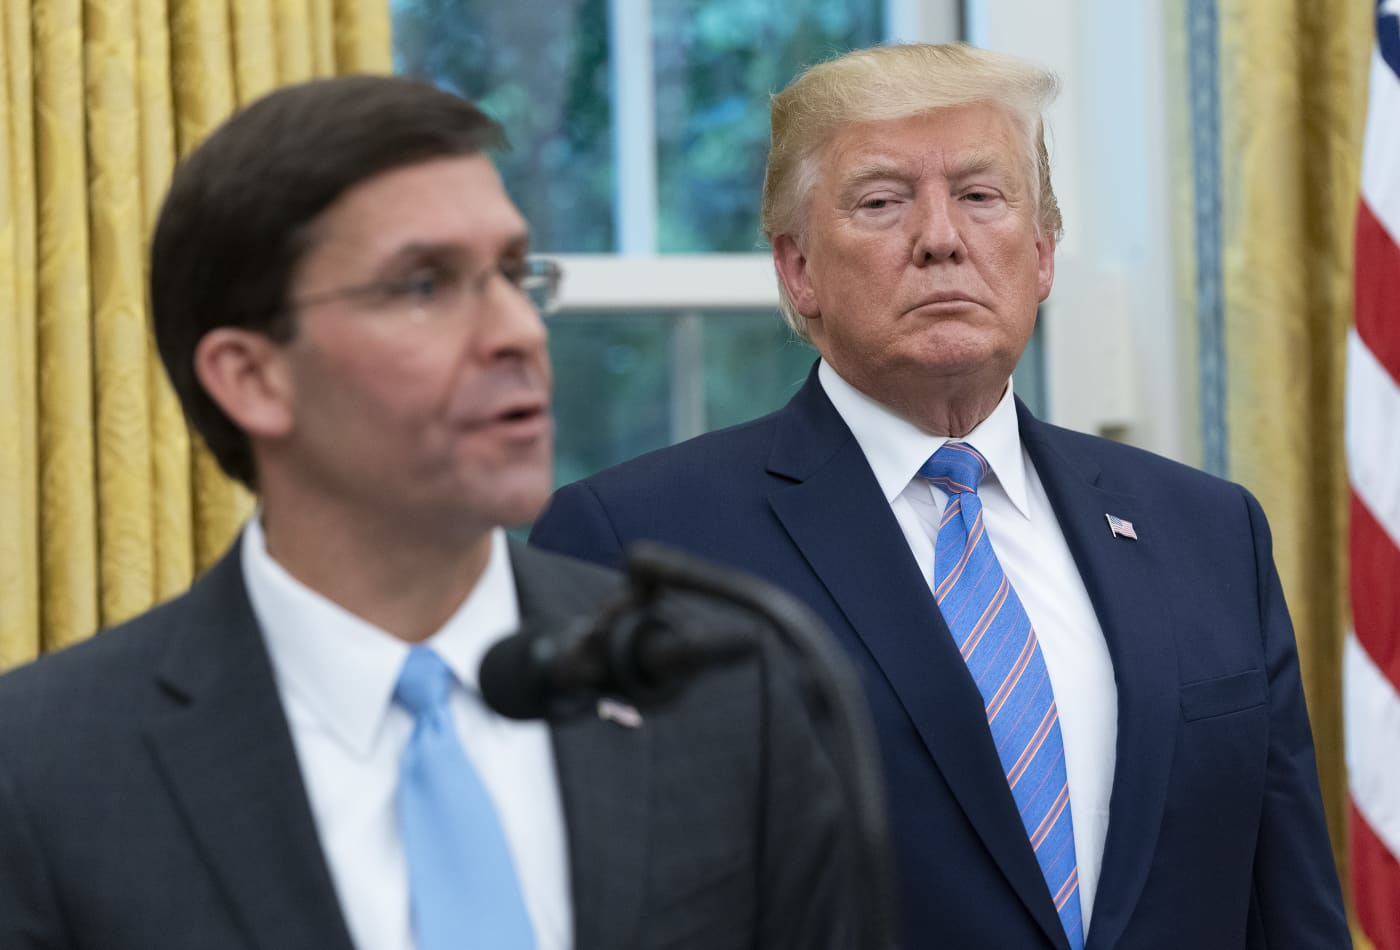 Esper is still Defense secretary 'as of right now,' White House says after reports say Trump was angry with him